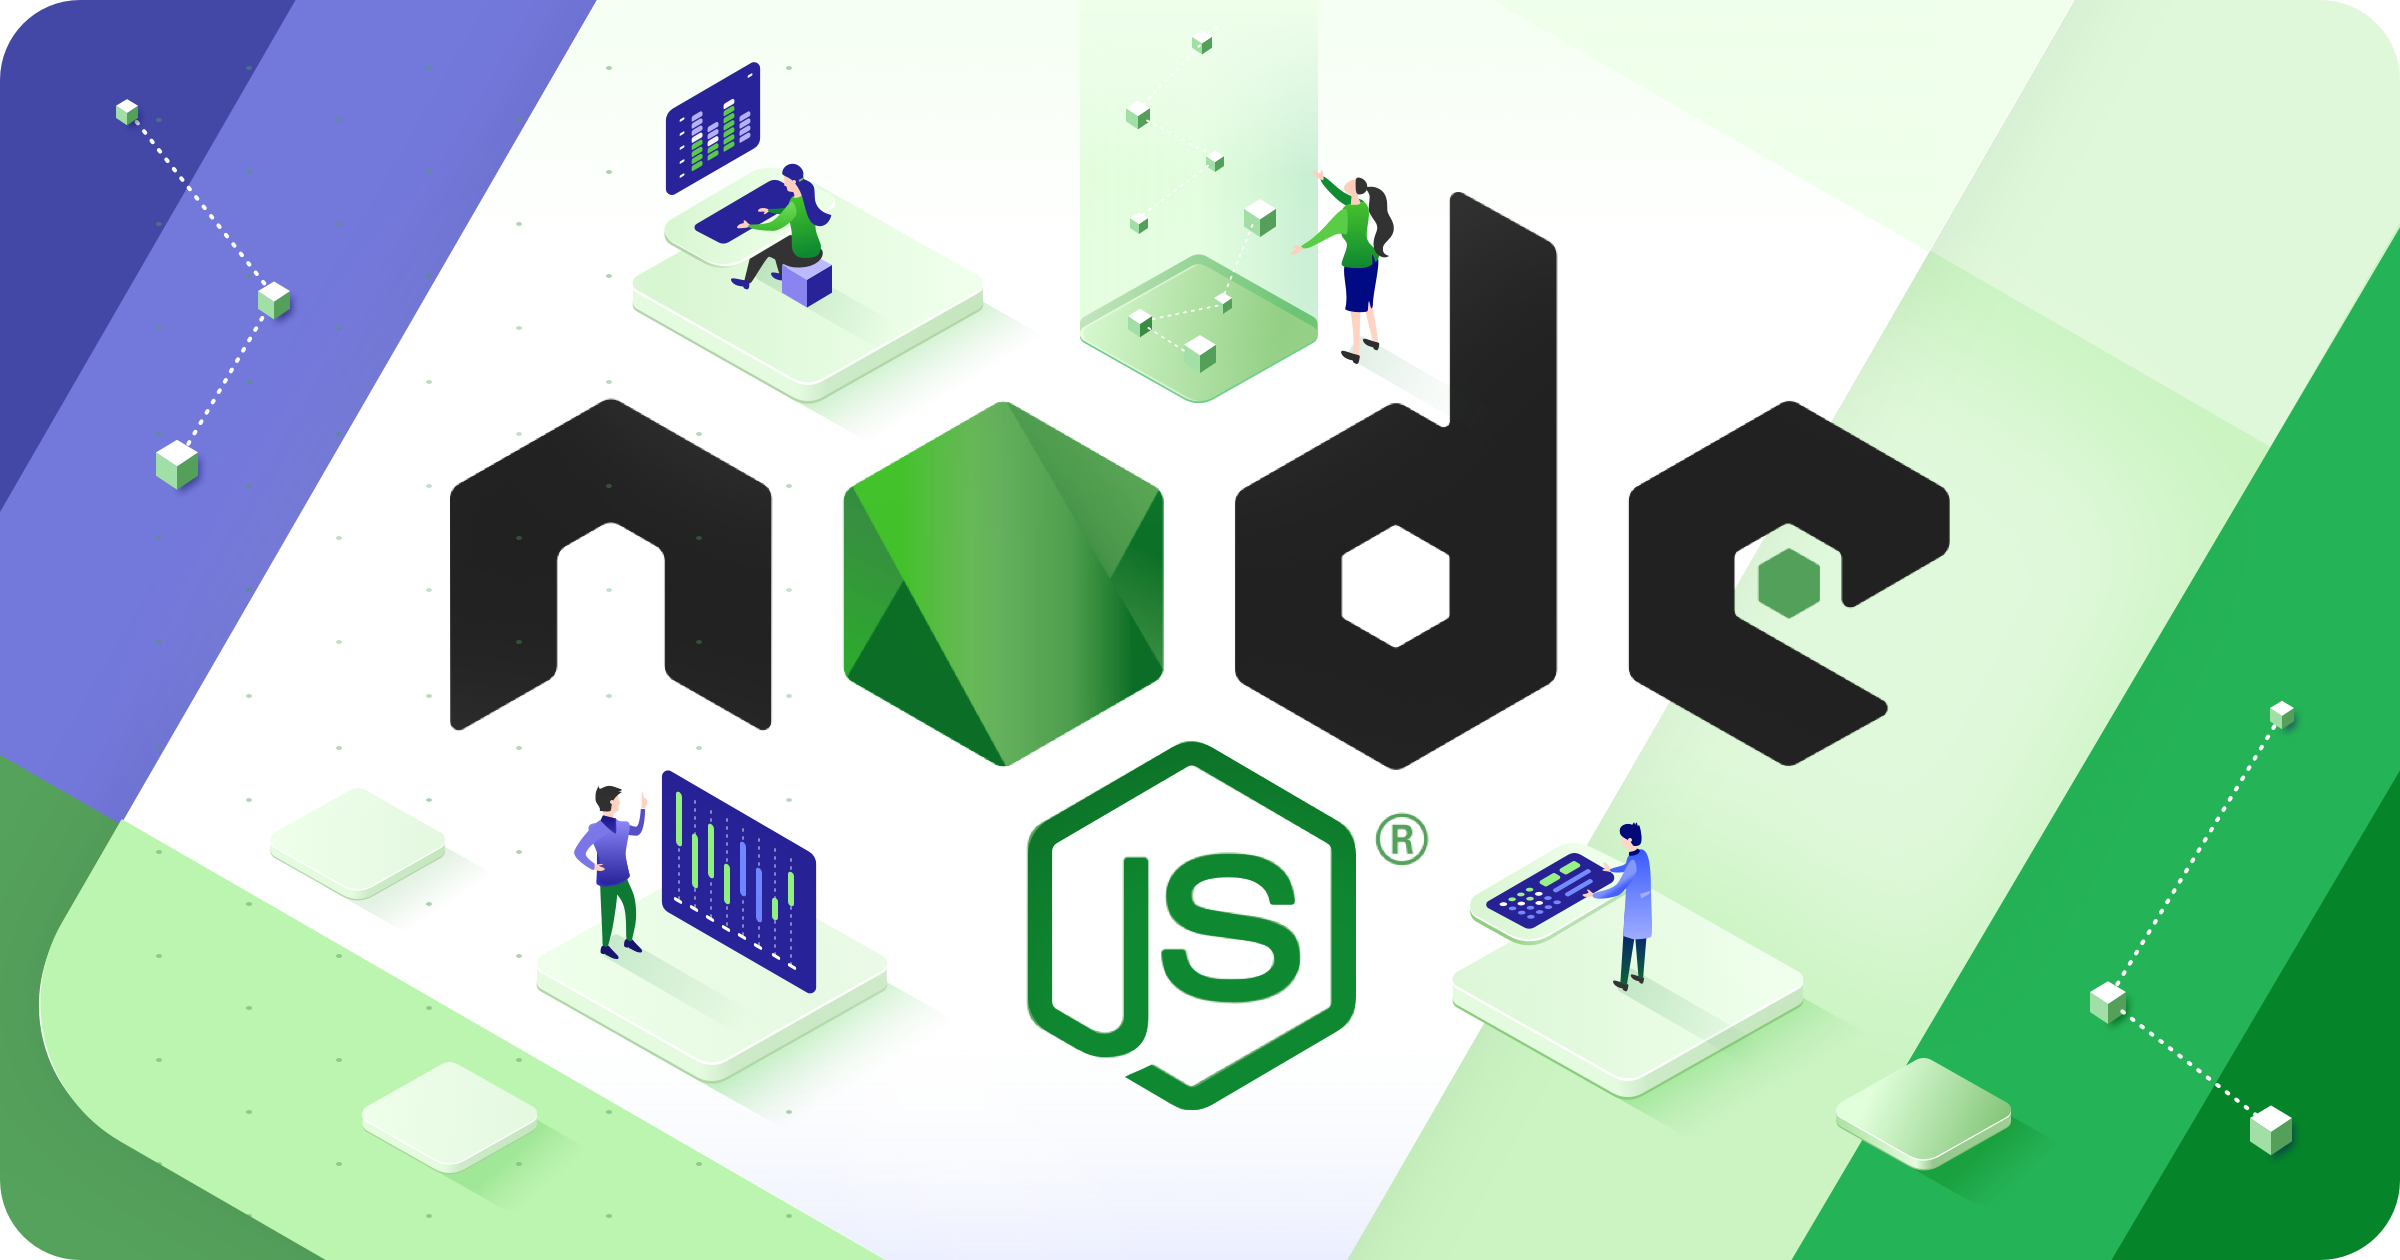 Node js - What Is It Best Used For? | Railsware Blog